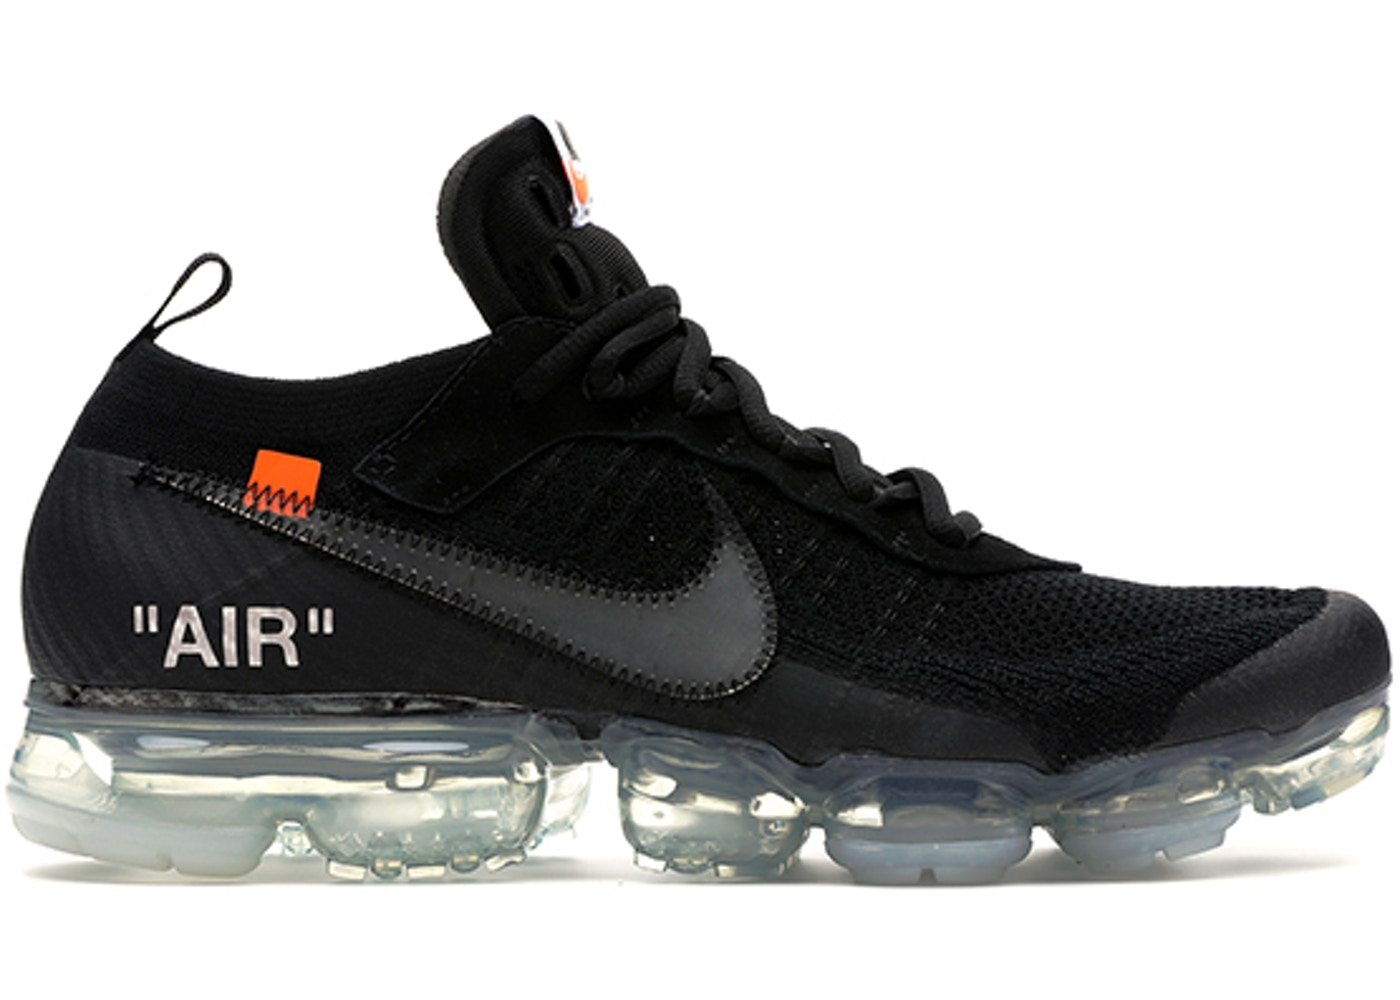 check out cdb72 31af9 Air VaporMax Off-White Black - AA3831-002